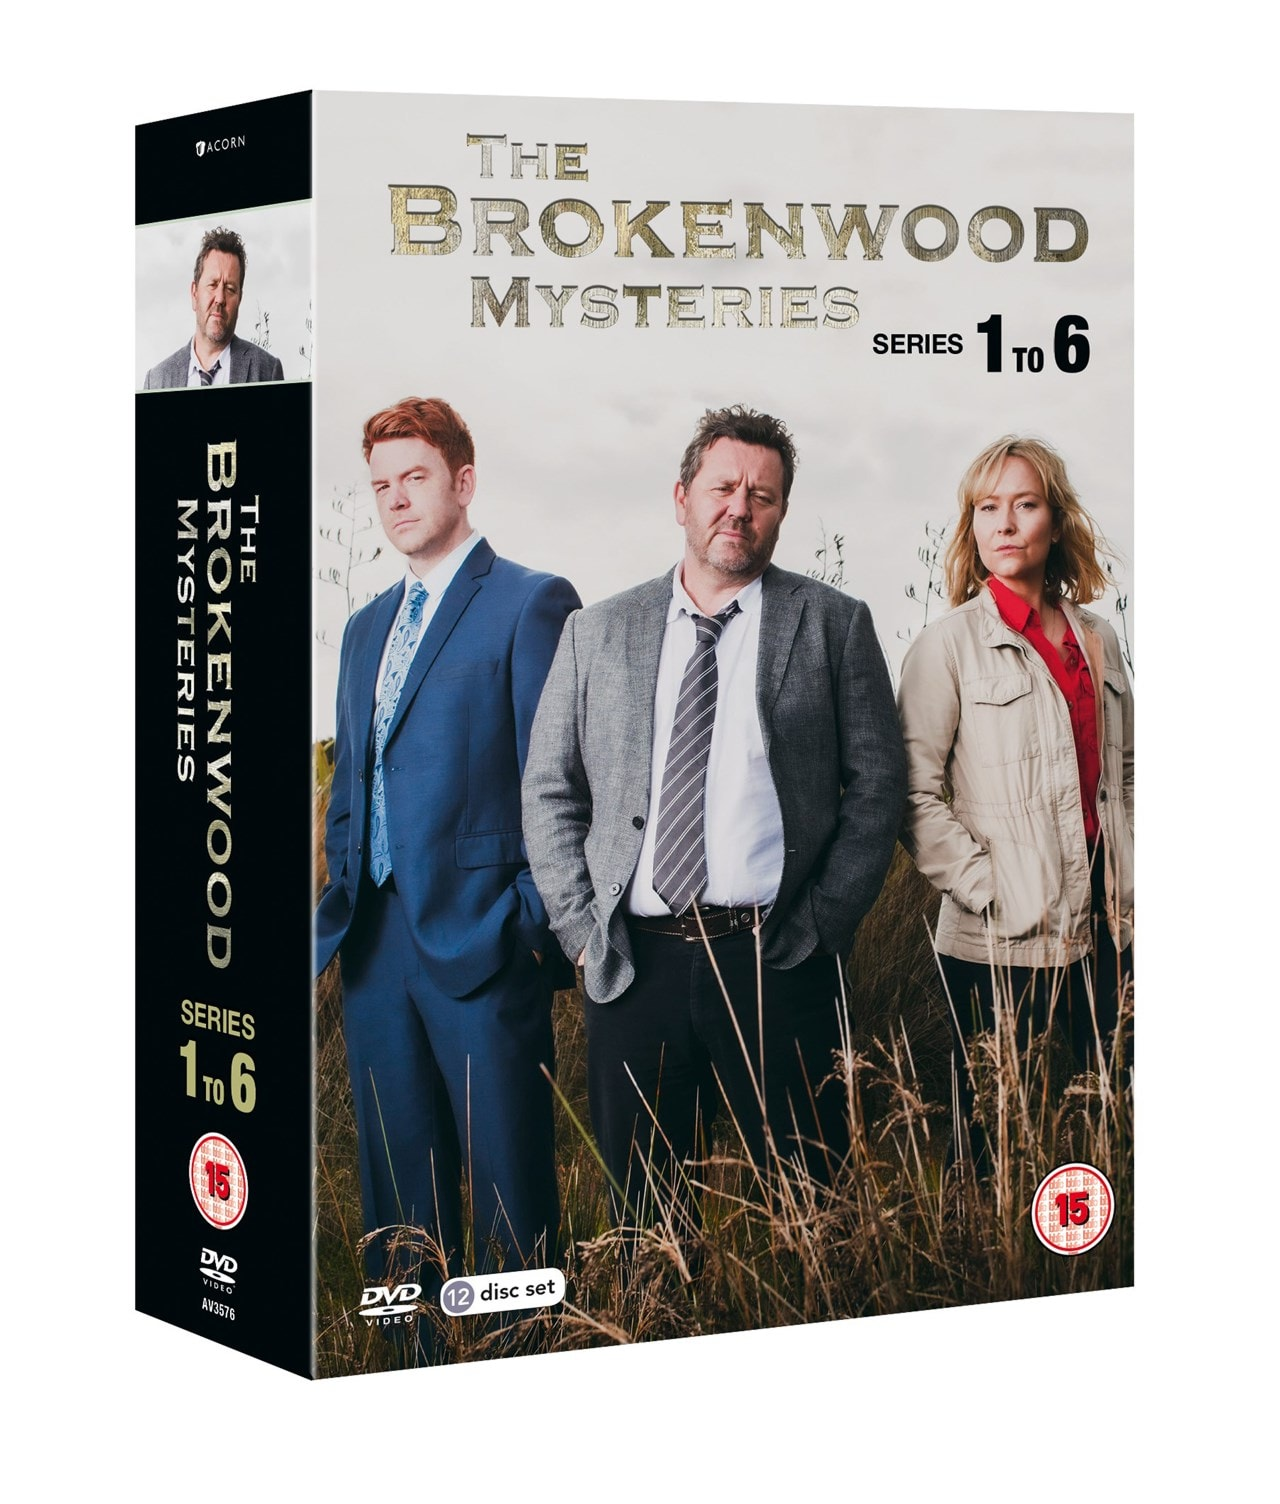 The Brokenwood Mysteries: Series 1 to 6 - 2